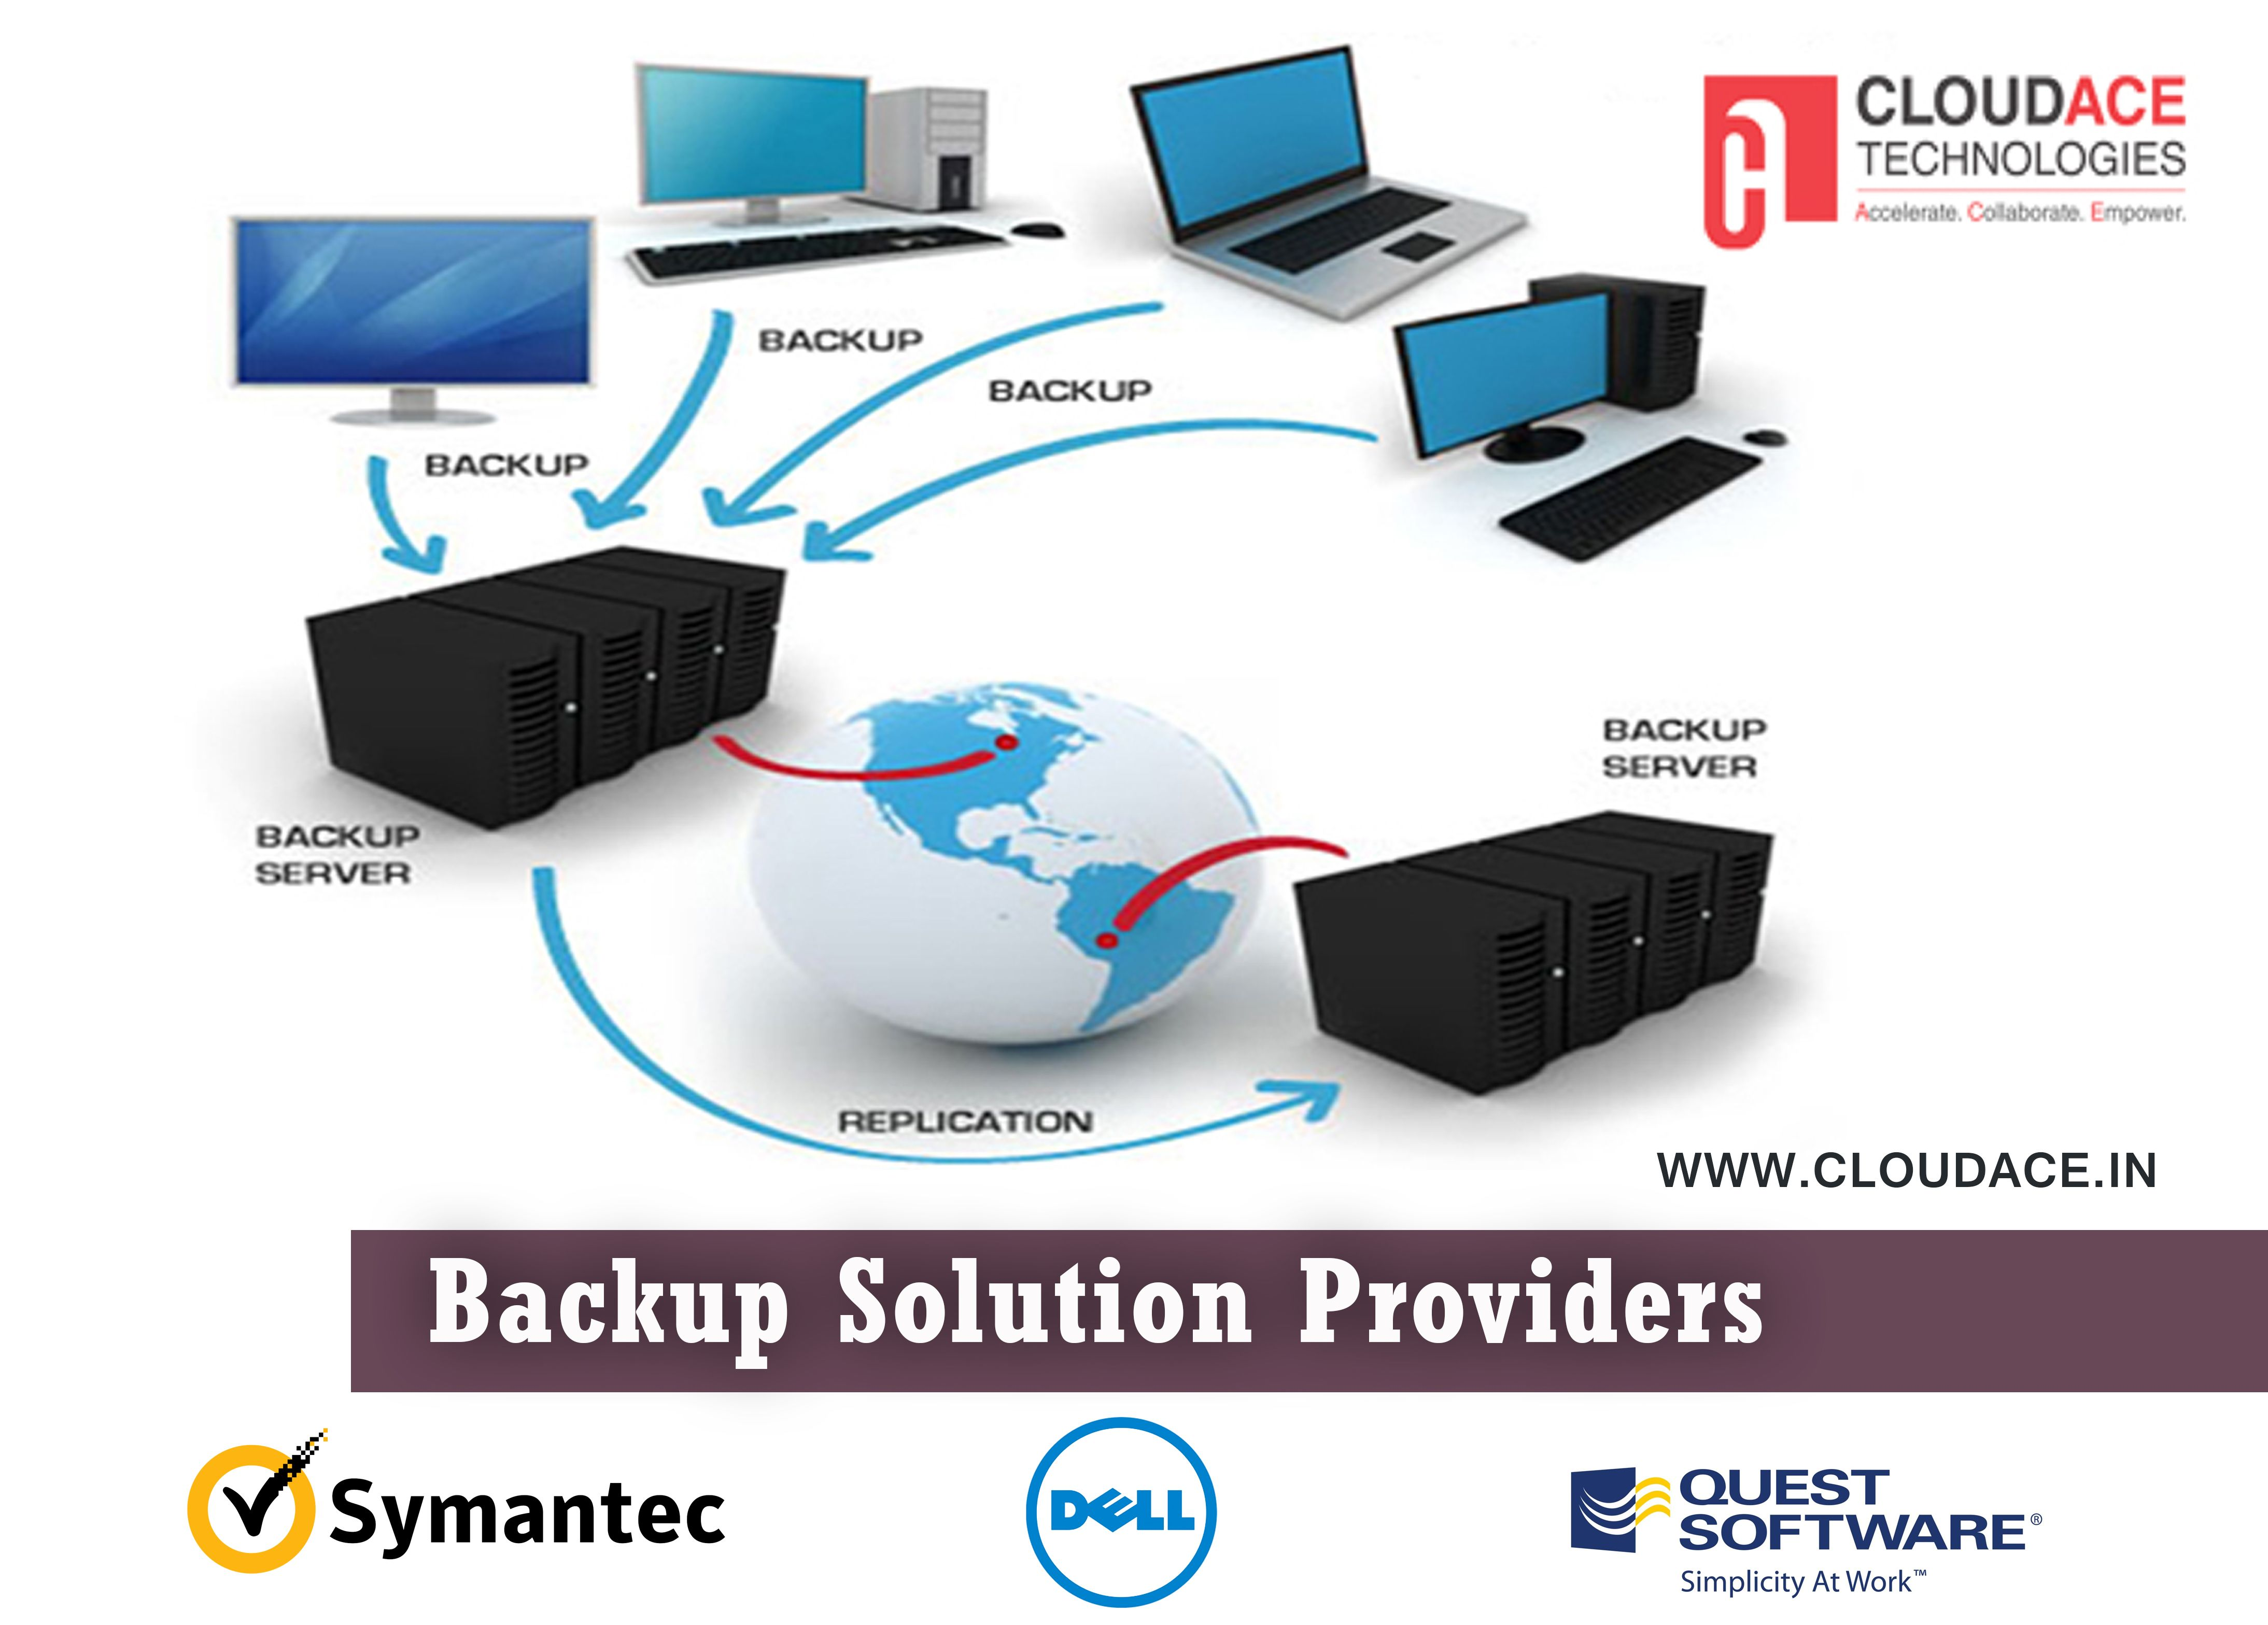 Being a reputed dealer of Amazon Online #BackupSolutions,we offer block storage, backup, file storage, disaster recovery at affordable prices.  Find us here :https://goo.gl/b7PmY3